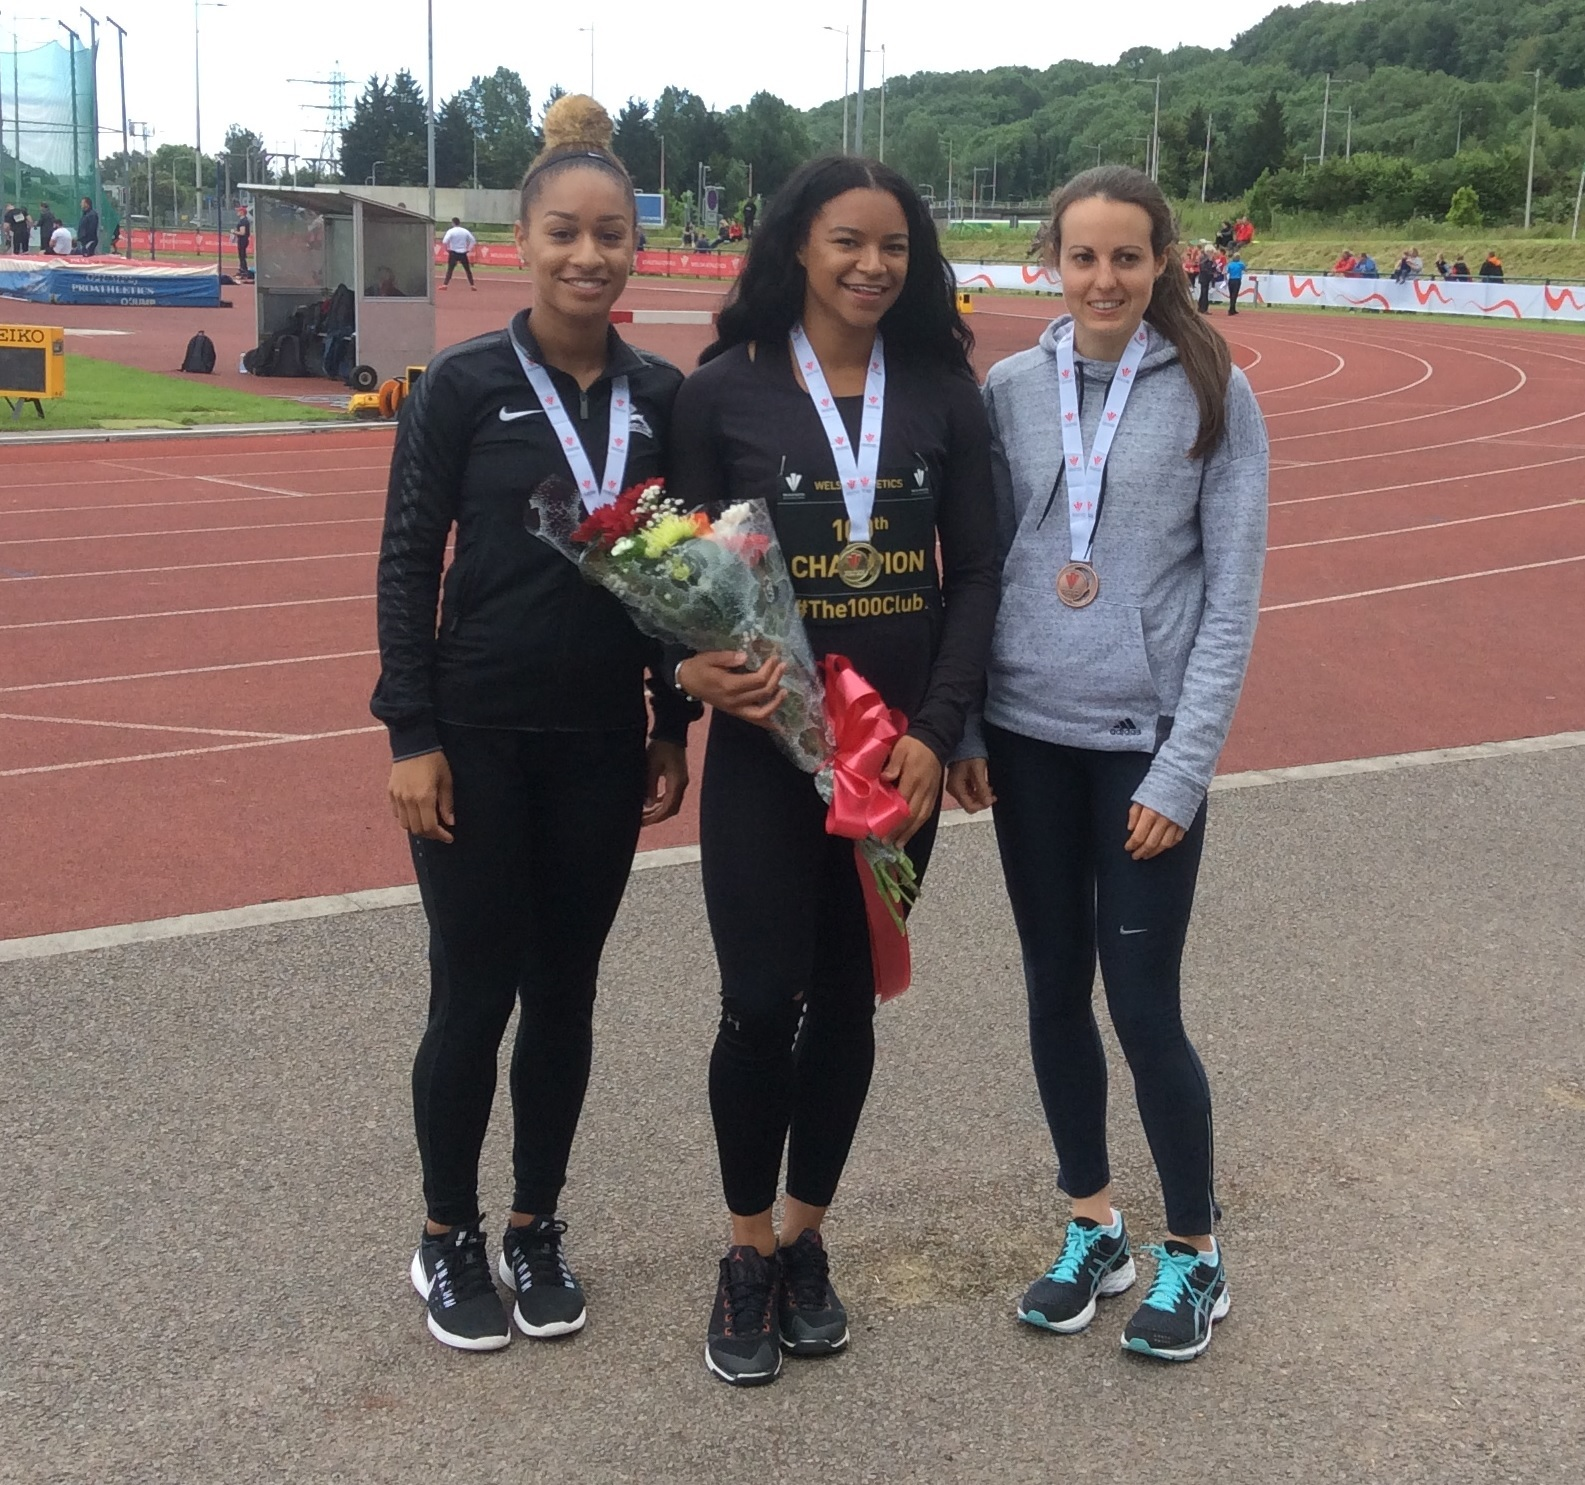 SPRINT SUCCESS: Mica Moore, centre, celebrates her 100m victory at last summer's Welsh Championships